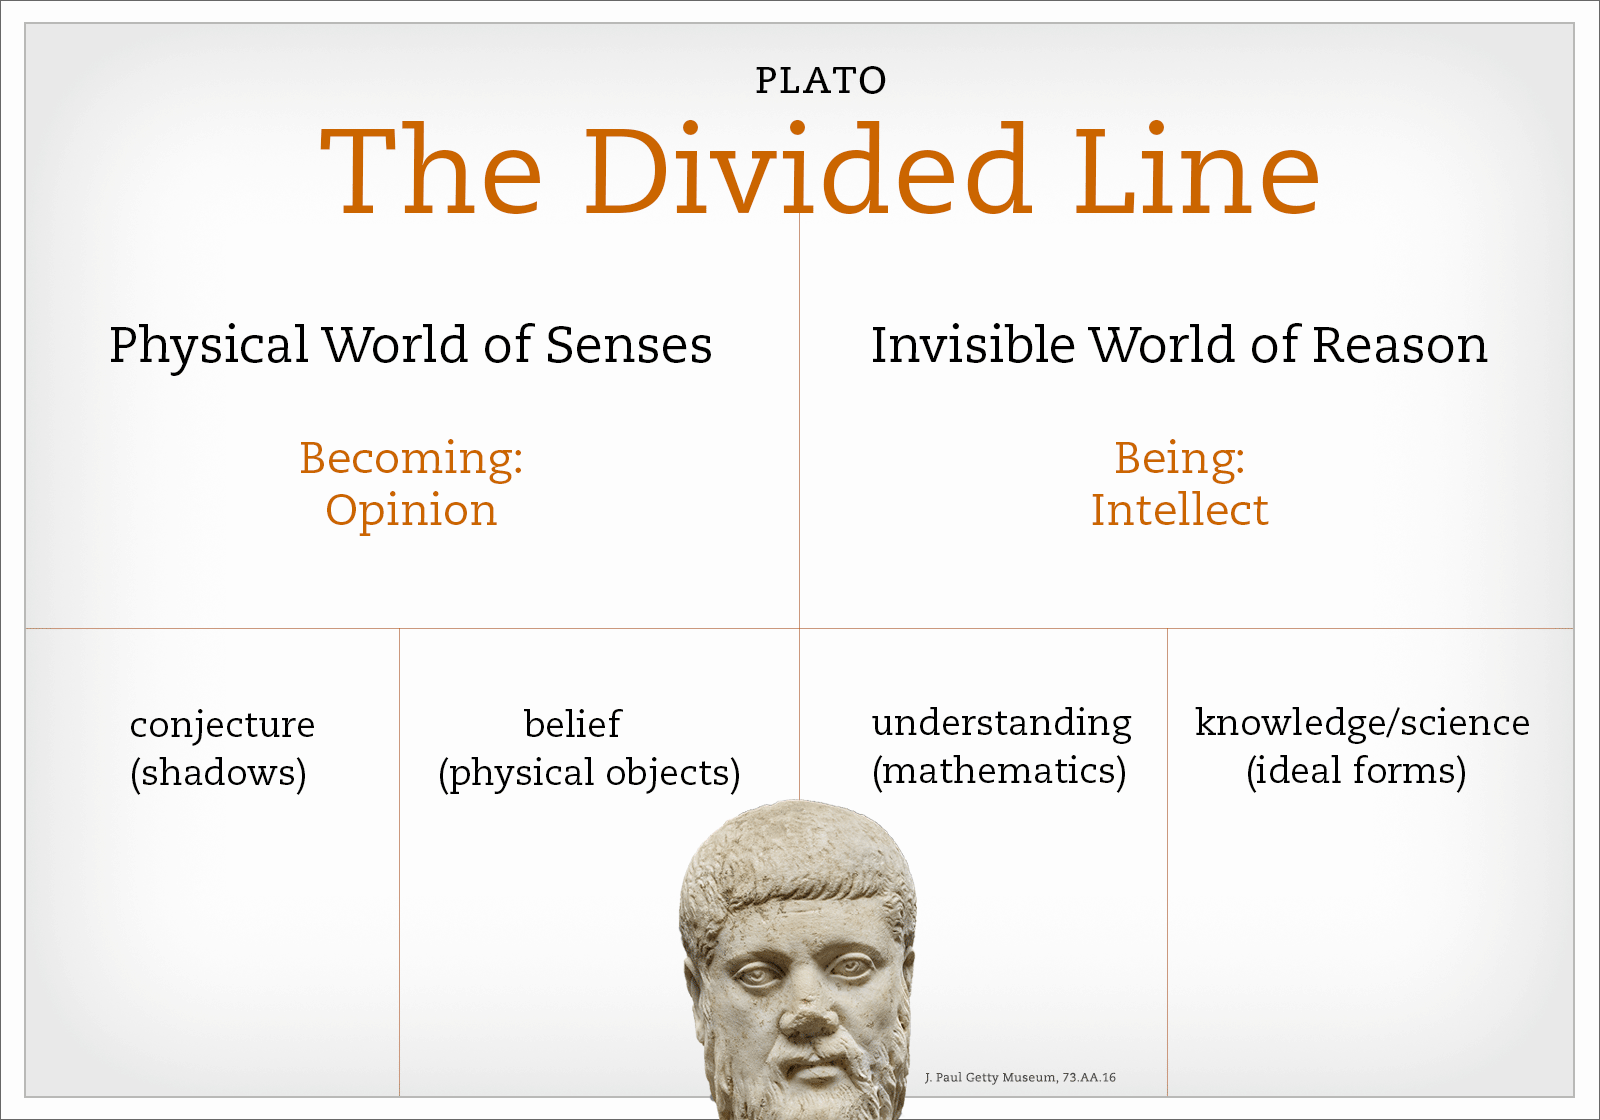 Word diagram of Plato's divided line, with an inset of a bust of Plato himself